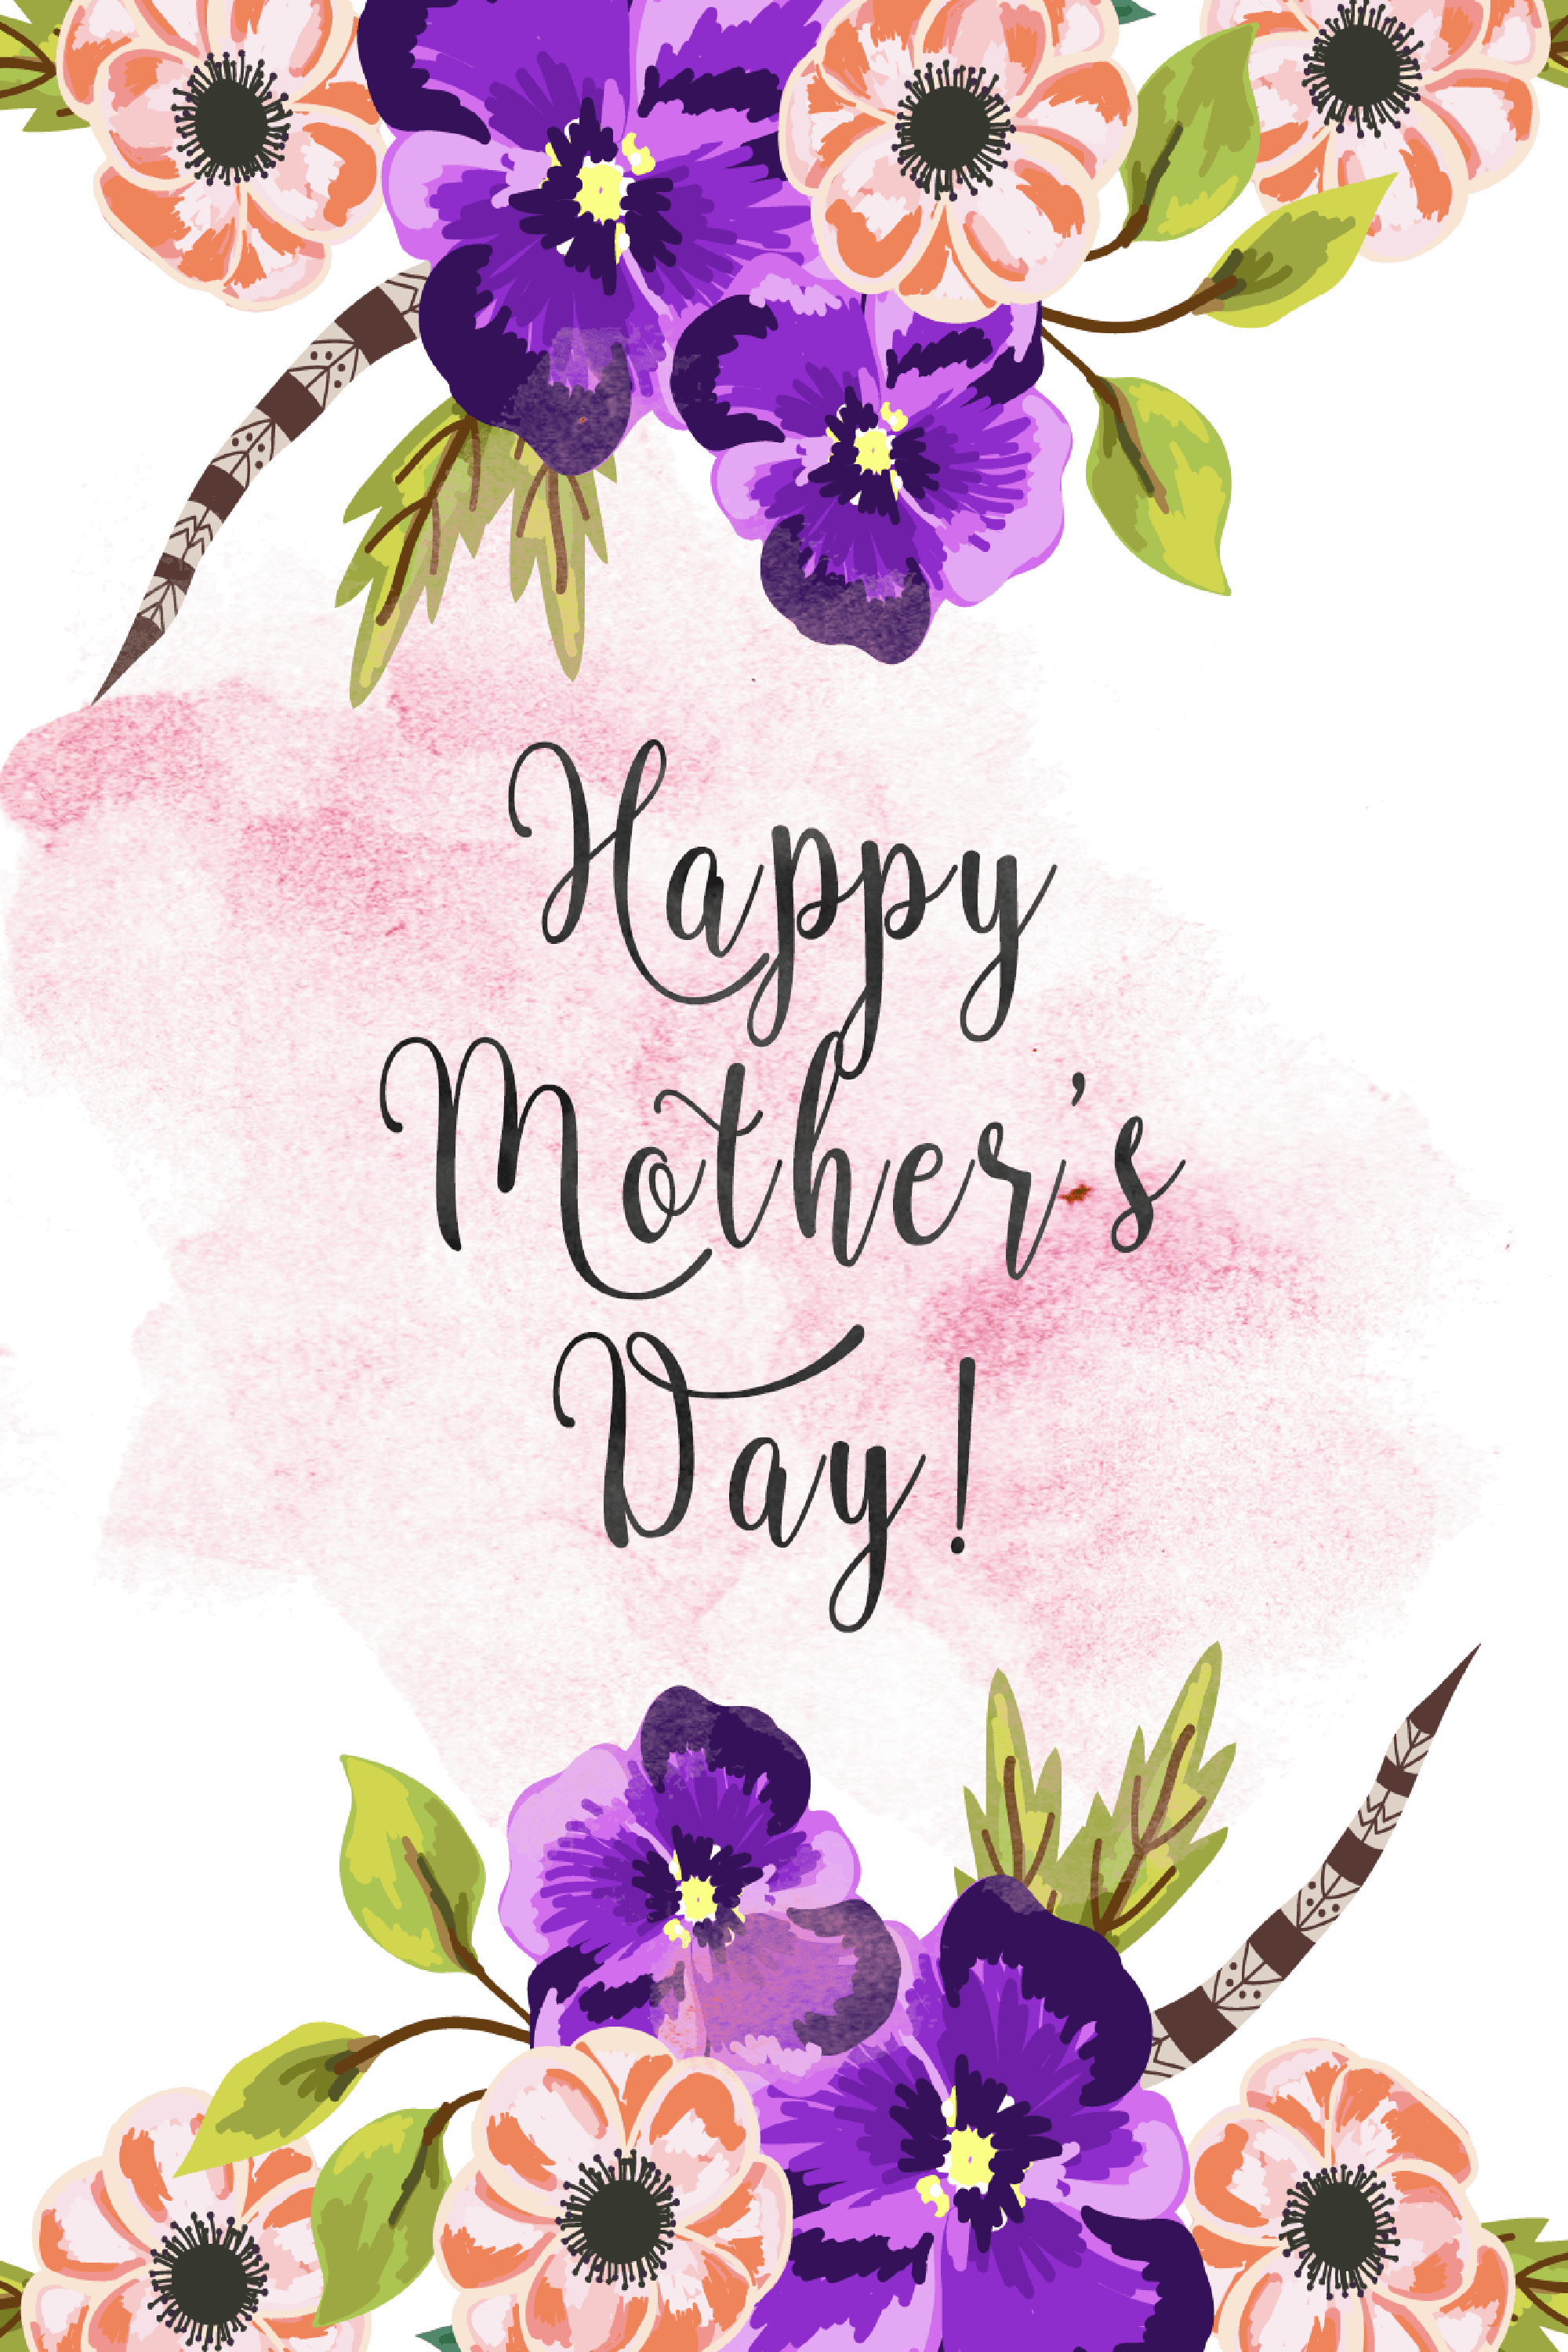 30 Cute Free Printable Mothers Day Cards - Mom Cards You Can Print - Free Printable Mothers Day Cards